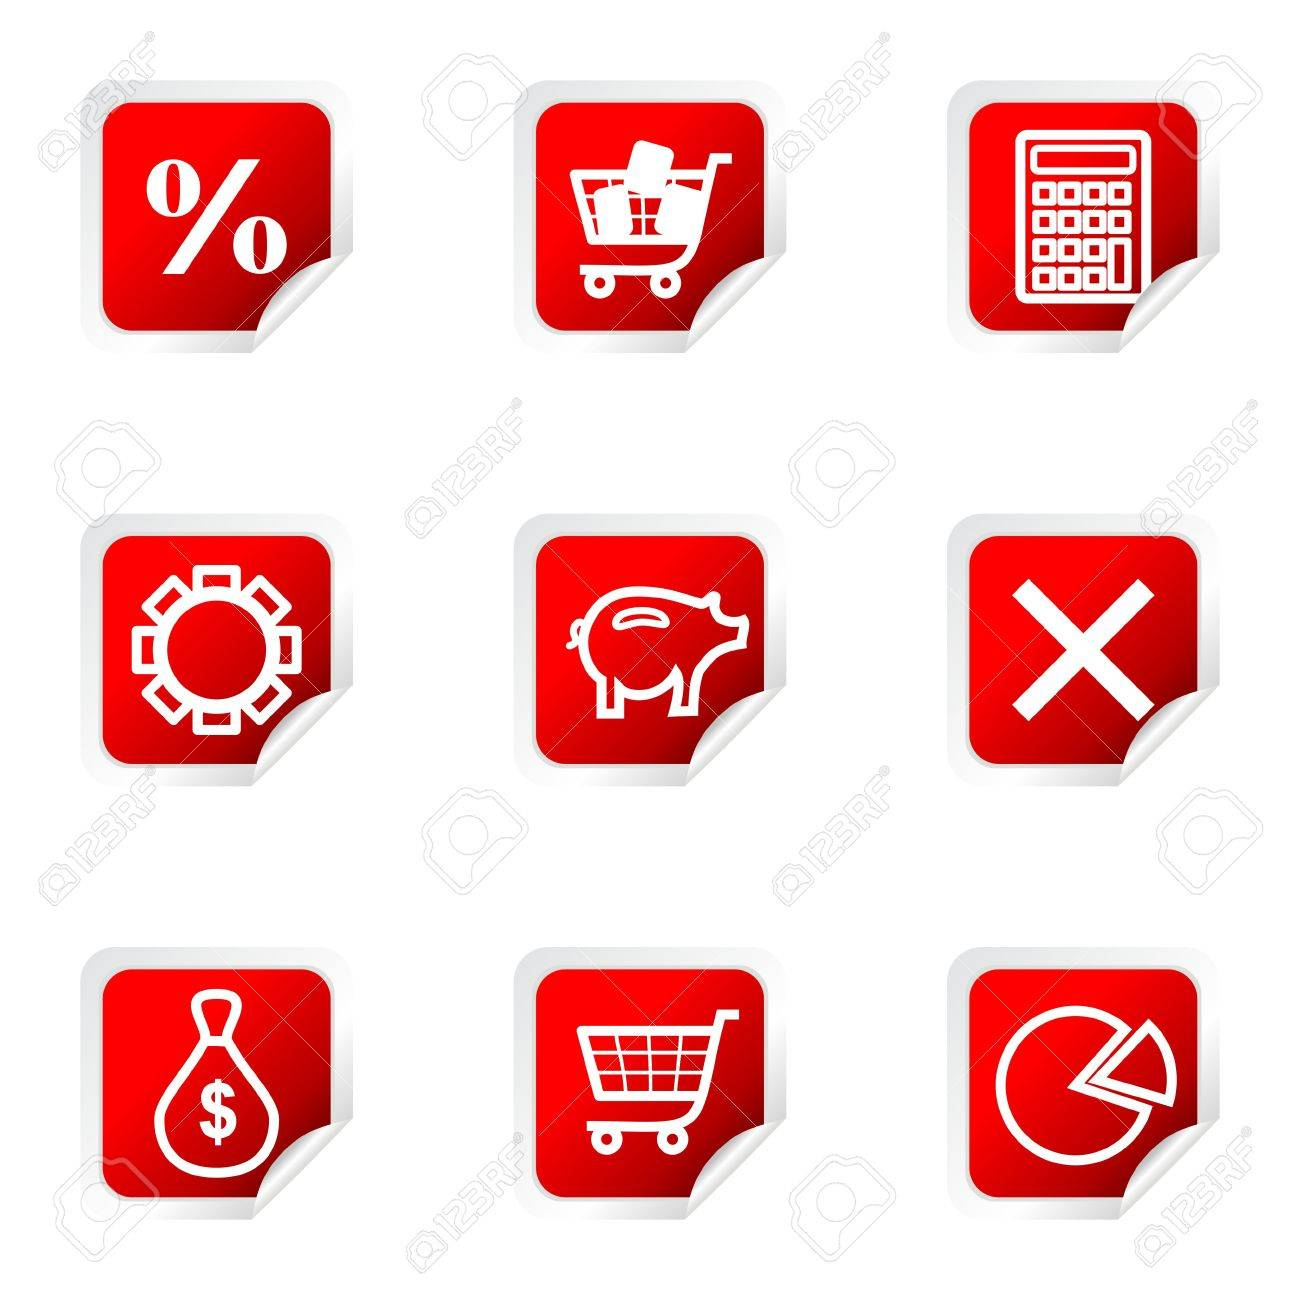 Set of 9 glossy web icons (set 3). Red square with corner. Stock Vector - 16710743